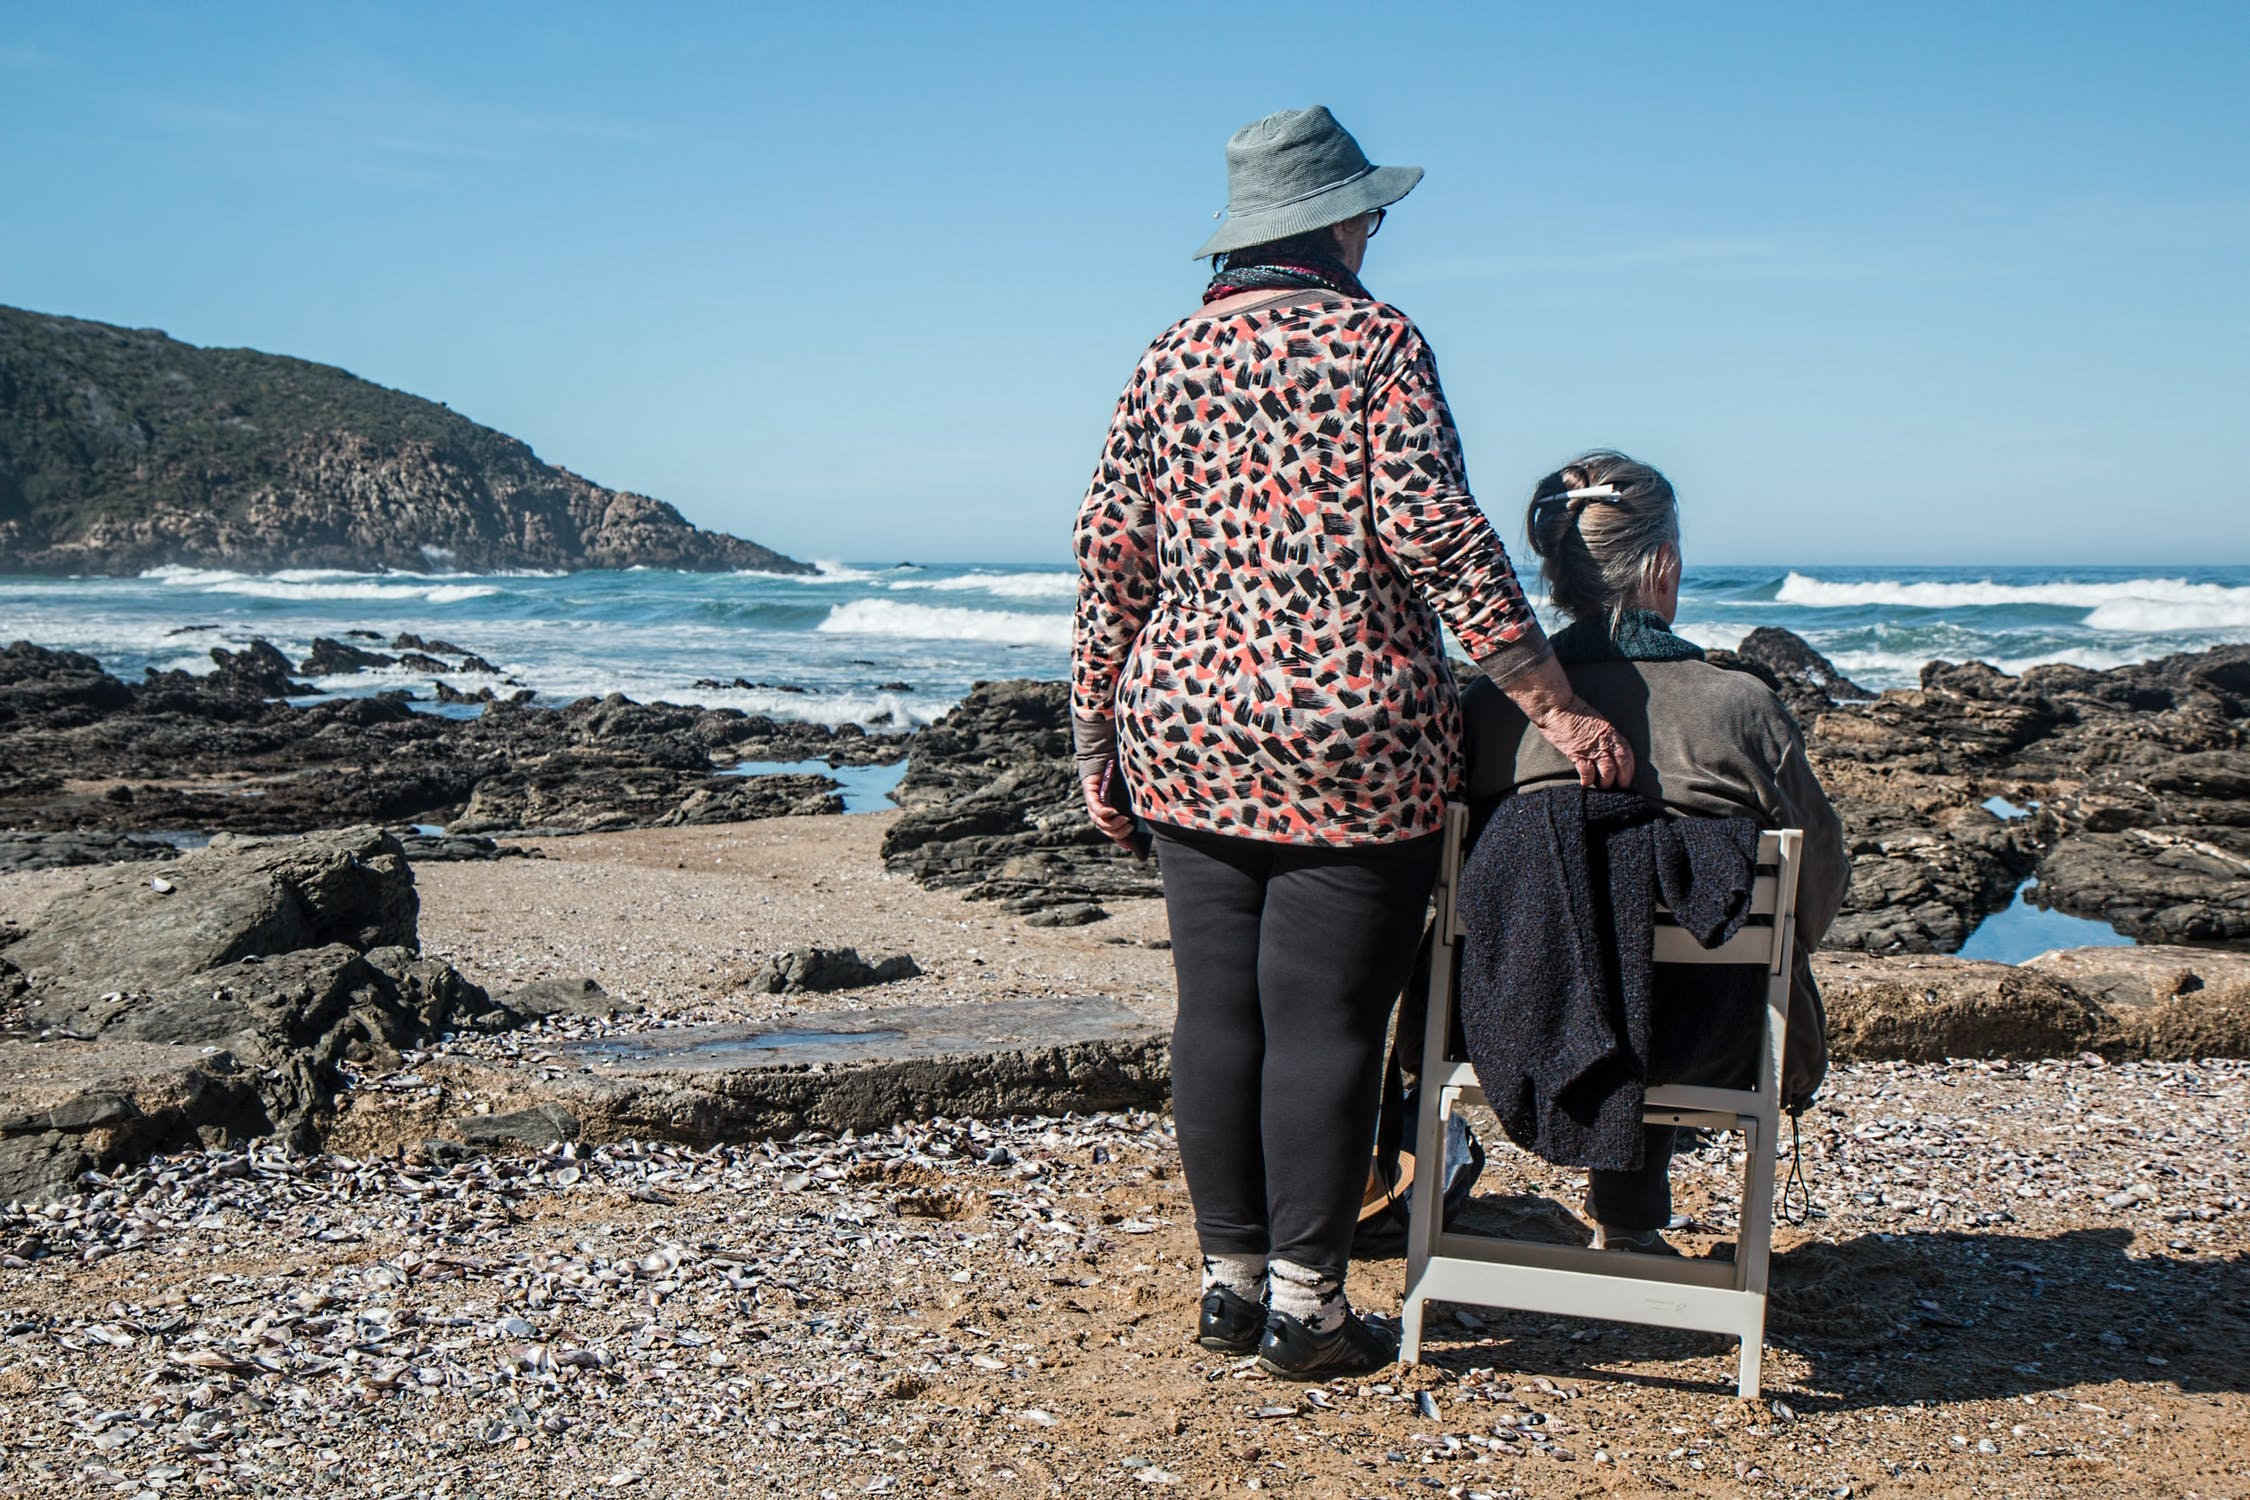 Two older women at the beach discussing the concept of why seniors shouldn't live alone.